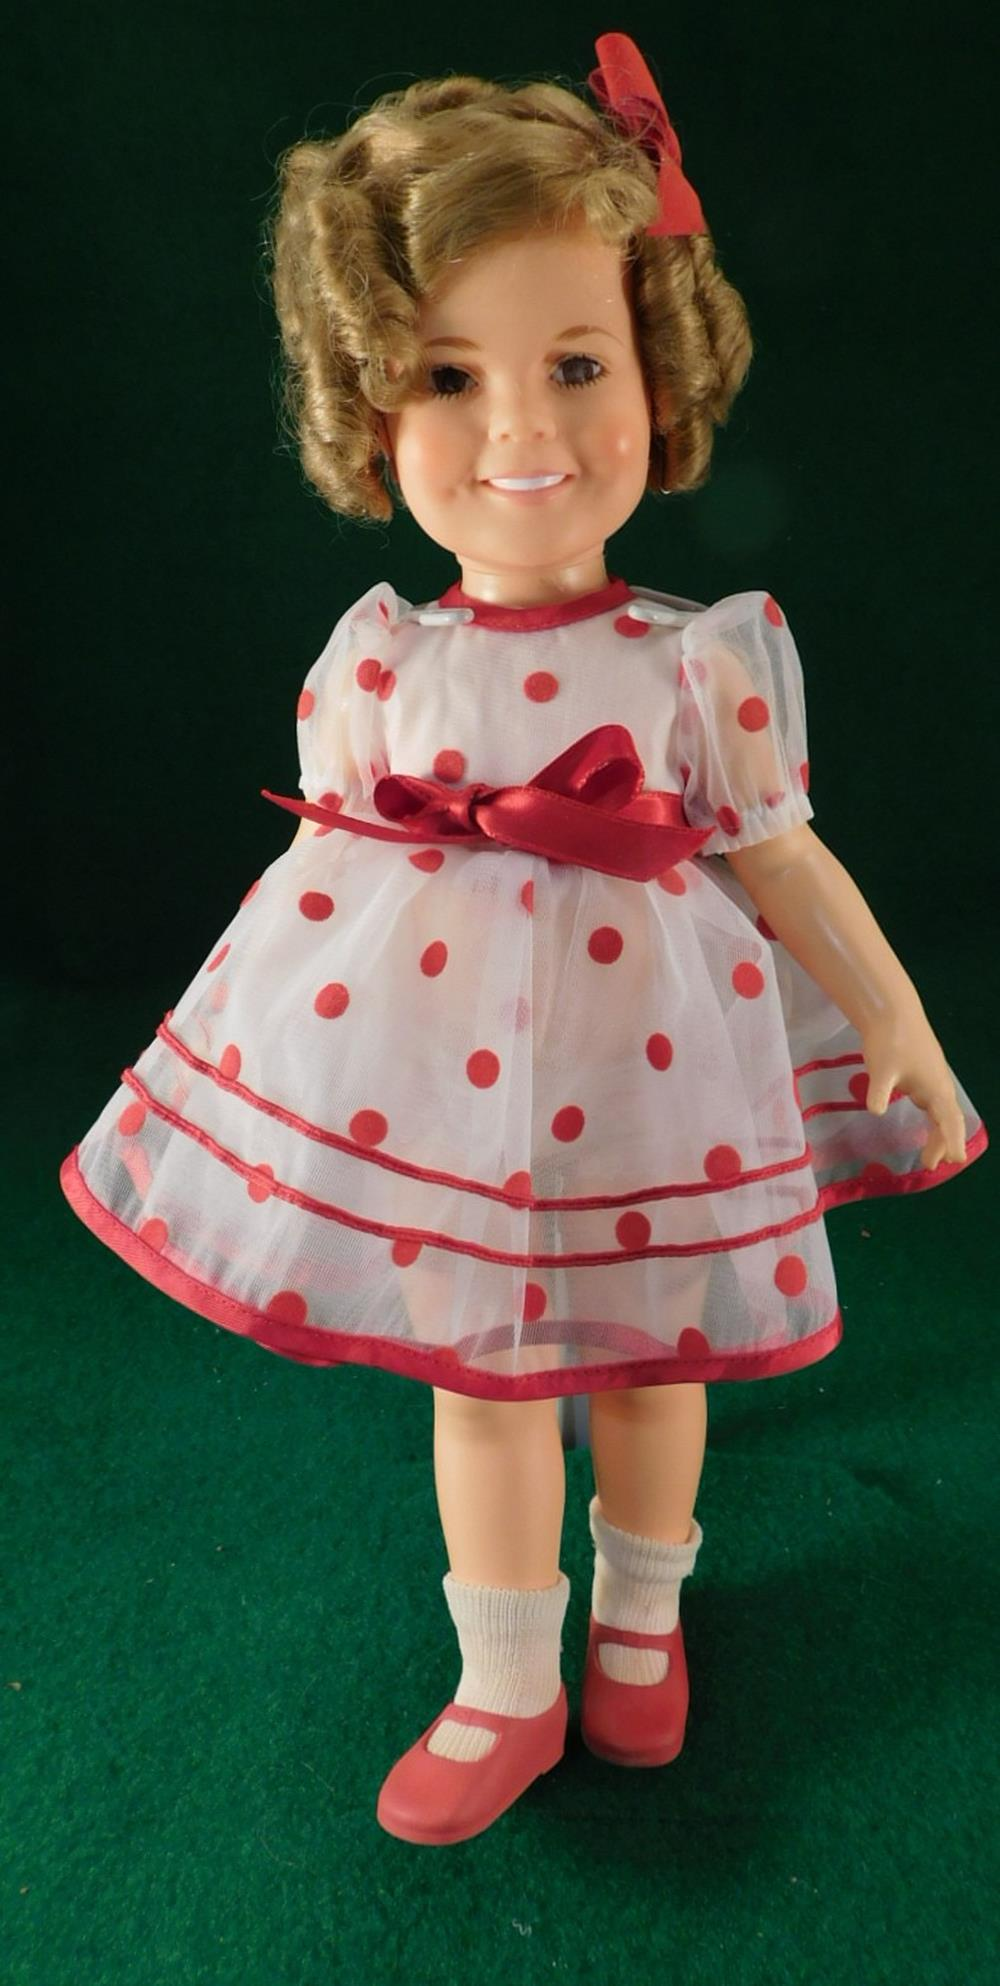 SHIRLEY TEMPLE DOLL VINTAGE ANTIQUE POLKA DOT